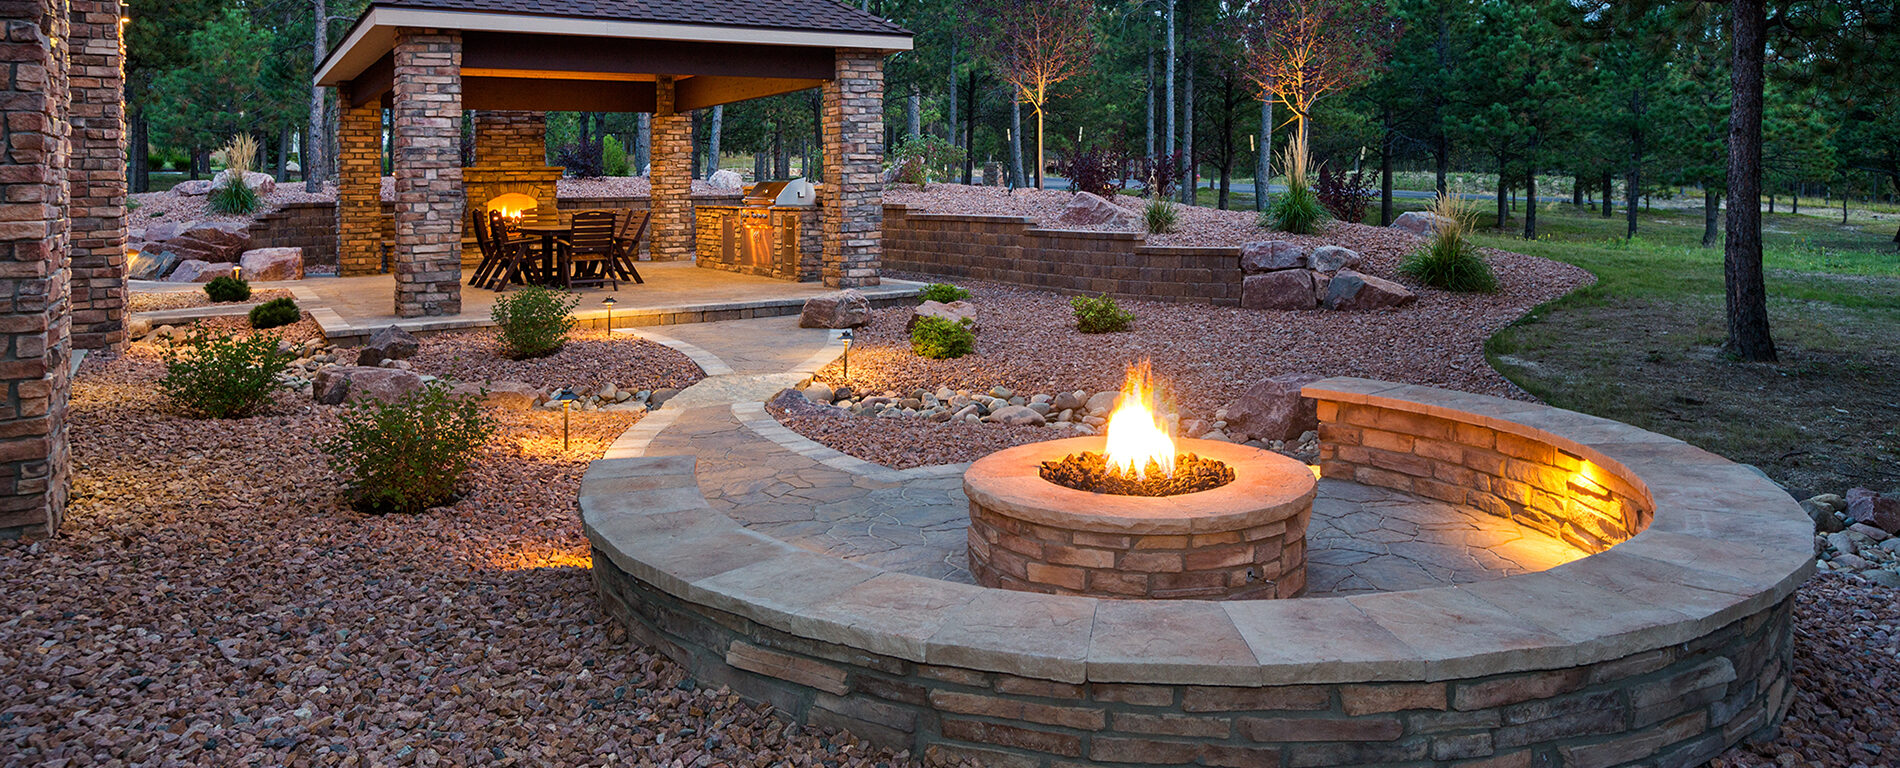 Outdoor Patios And Decks Living Outdoors